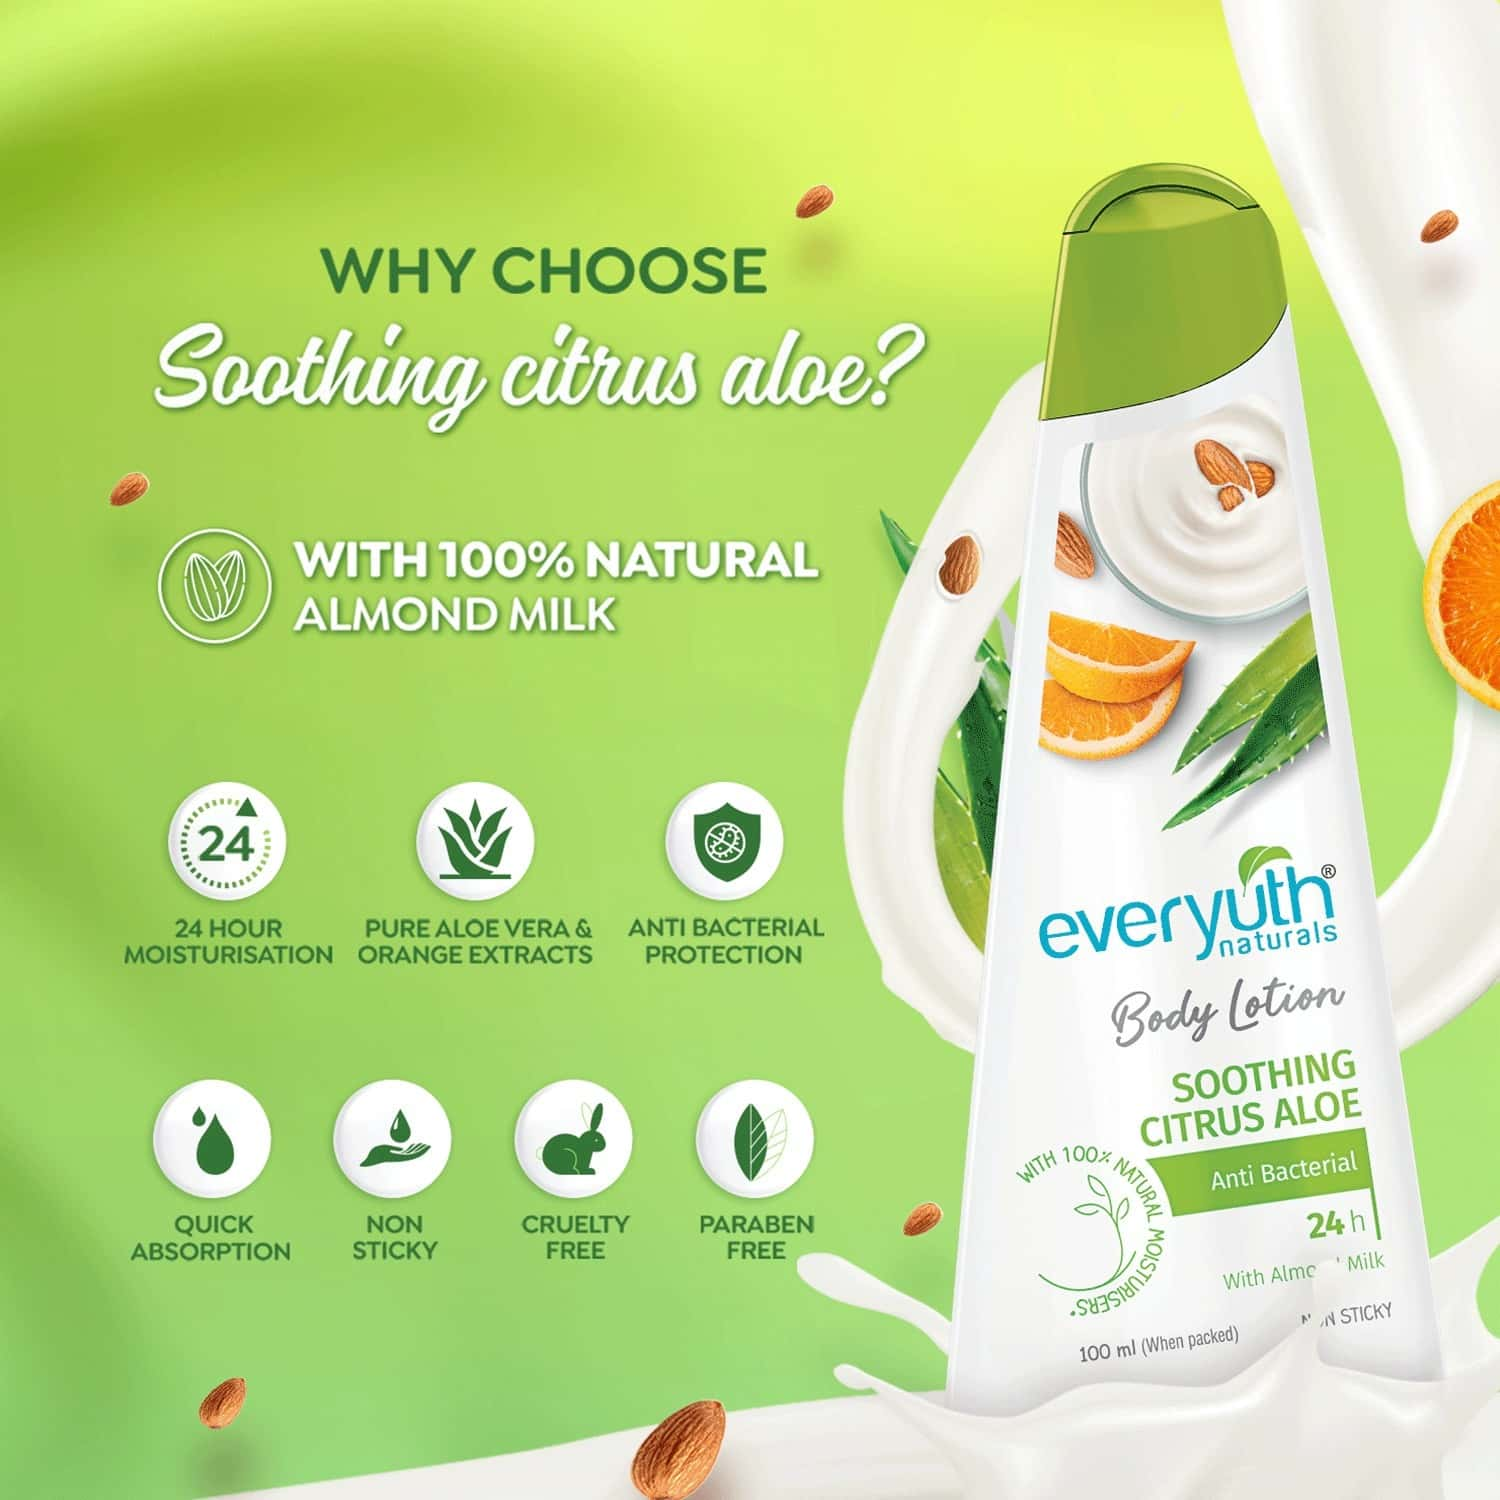 Everyuth Naturals Body Lotion Soothing Citrus Aloe 100ml